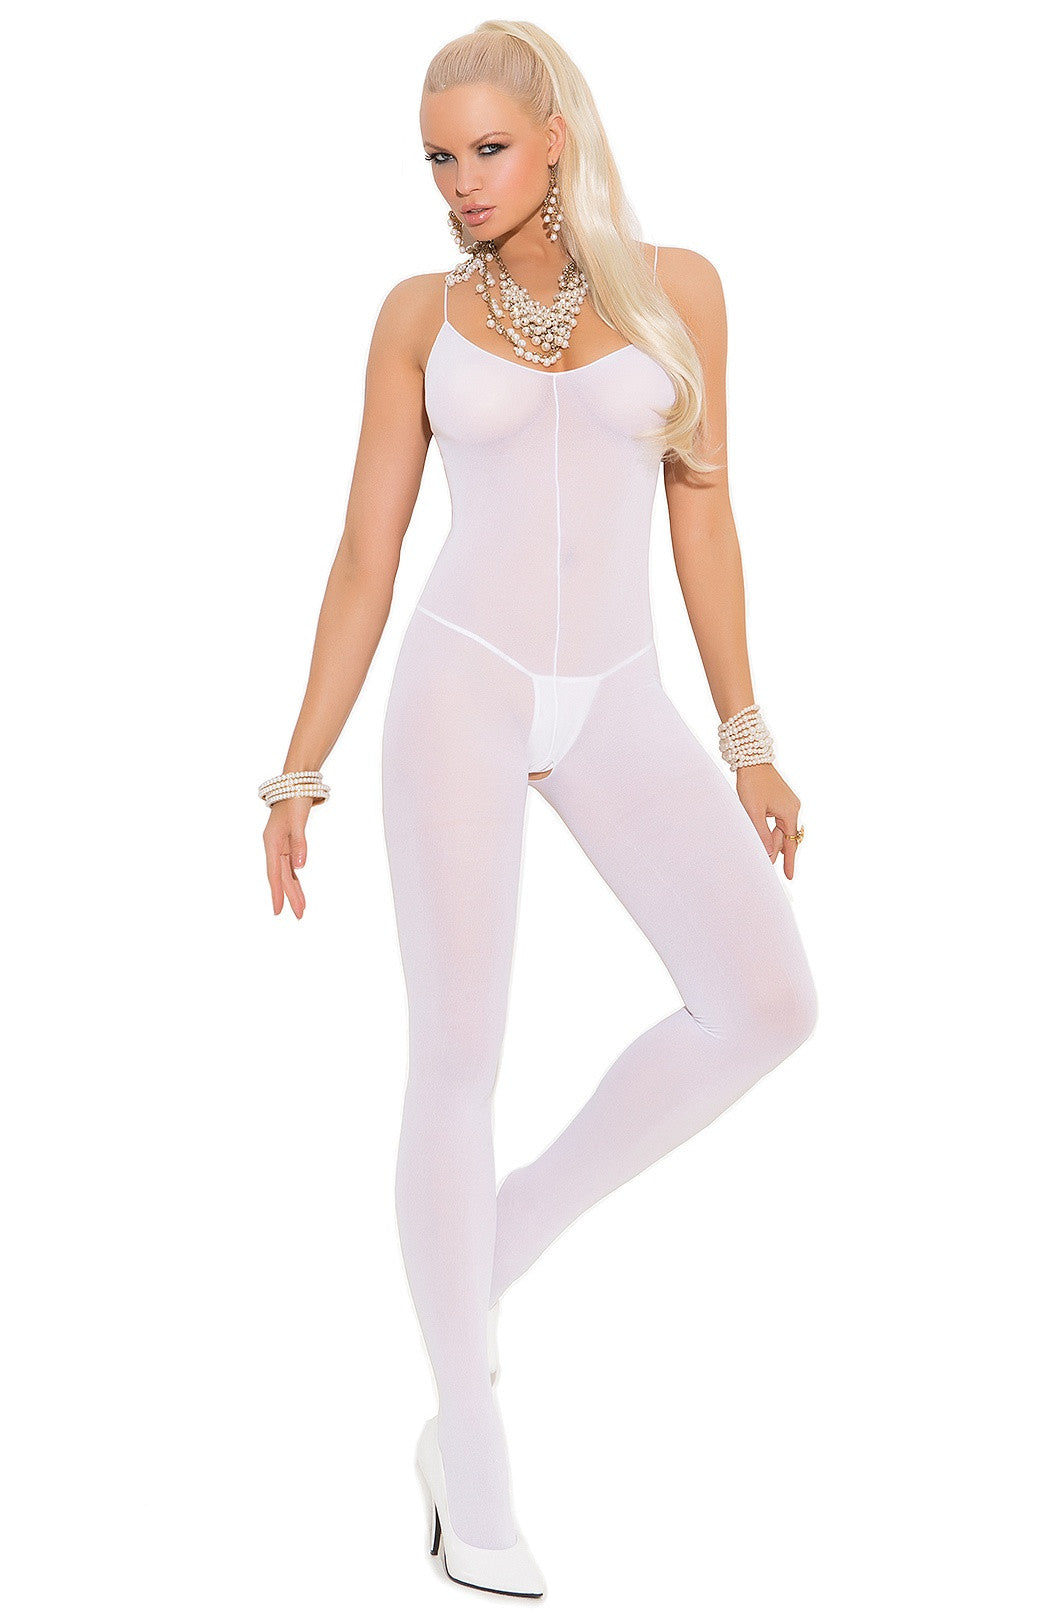 EM-1601 White bridal Bodystocking - Sexylingerieland